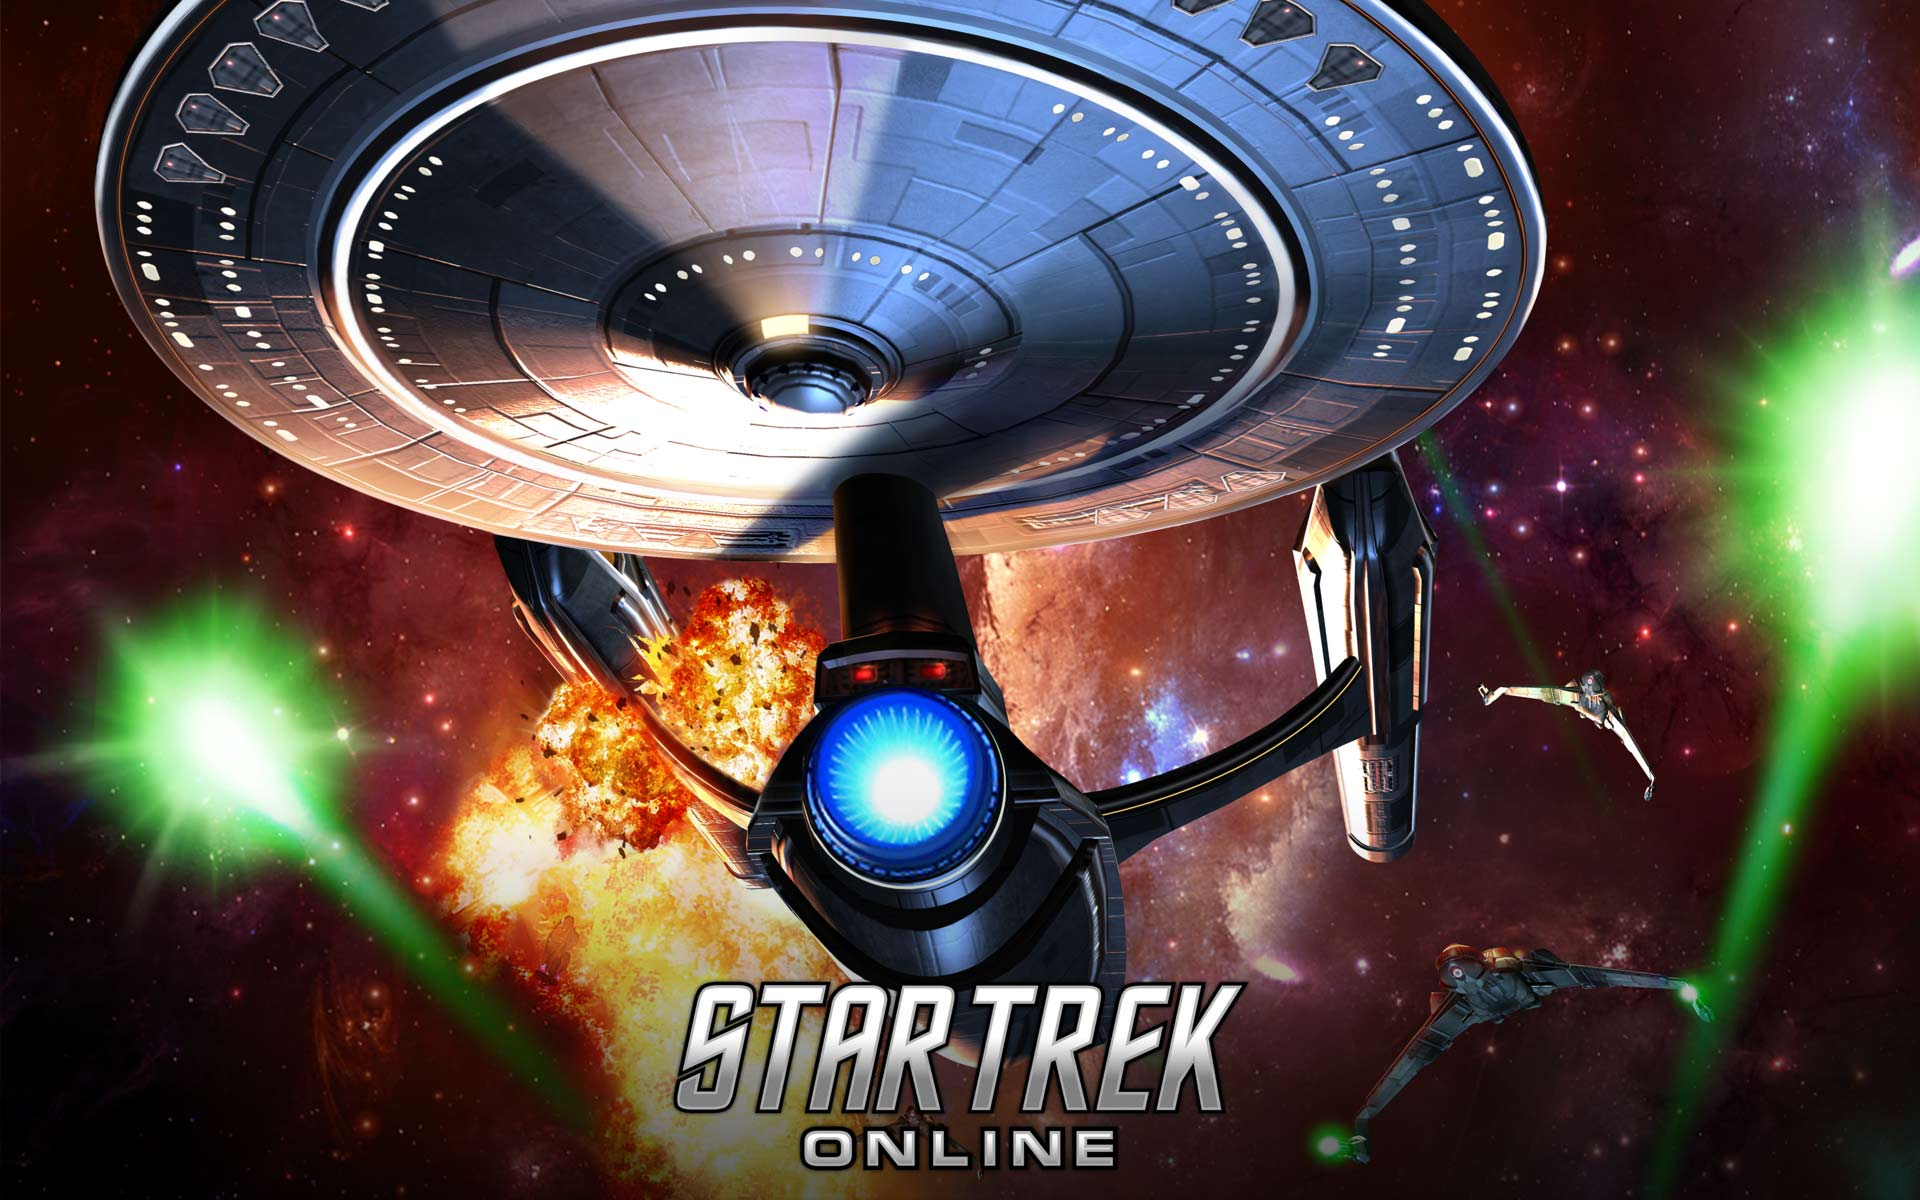 Star Trek Online Wallpaper wallpaper wallpaper hd background 1920x1200